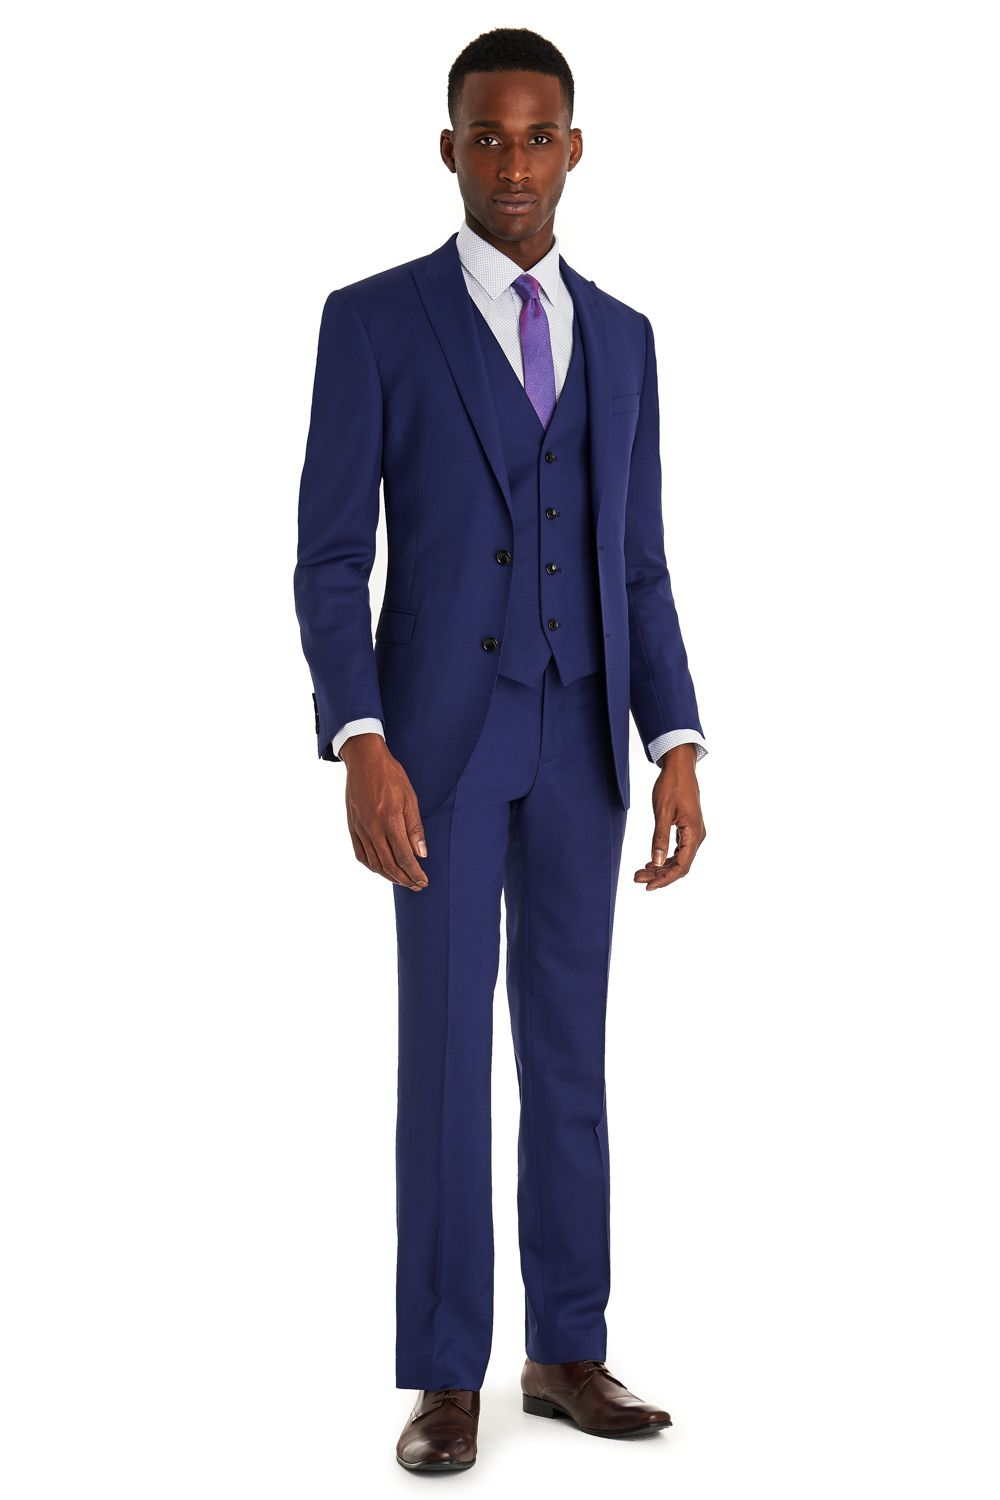 French Connection Slim Fit Bright Blue 3 Piece Suit | grooms page ...